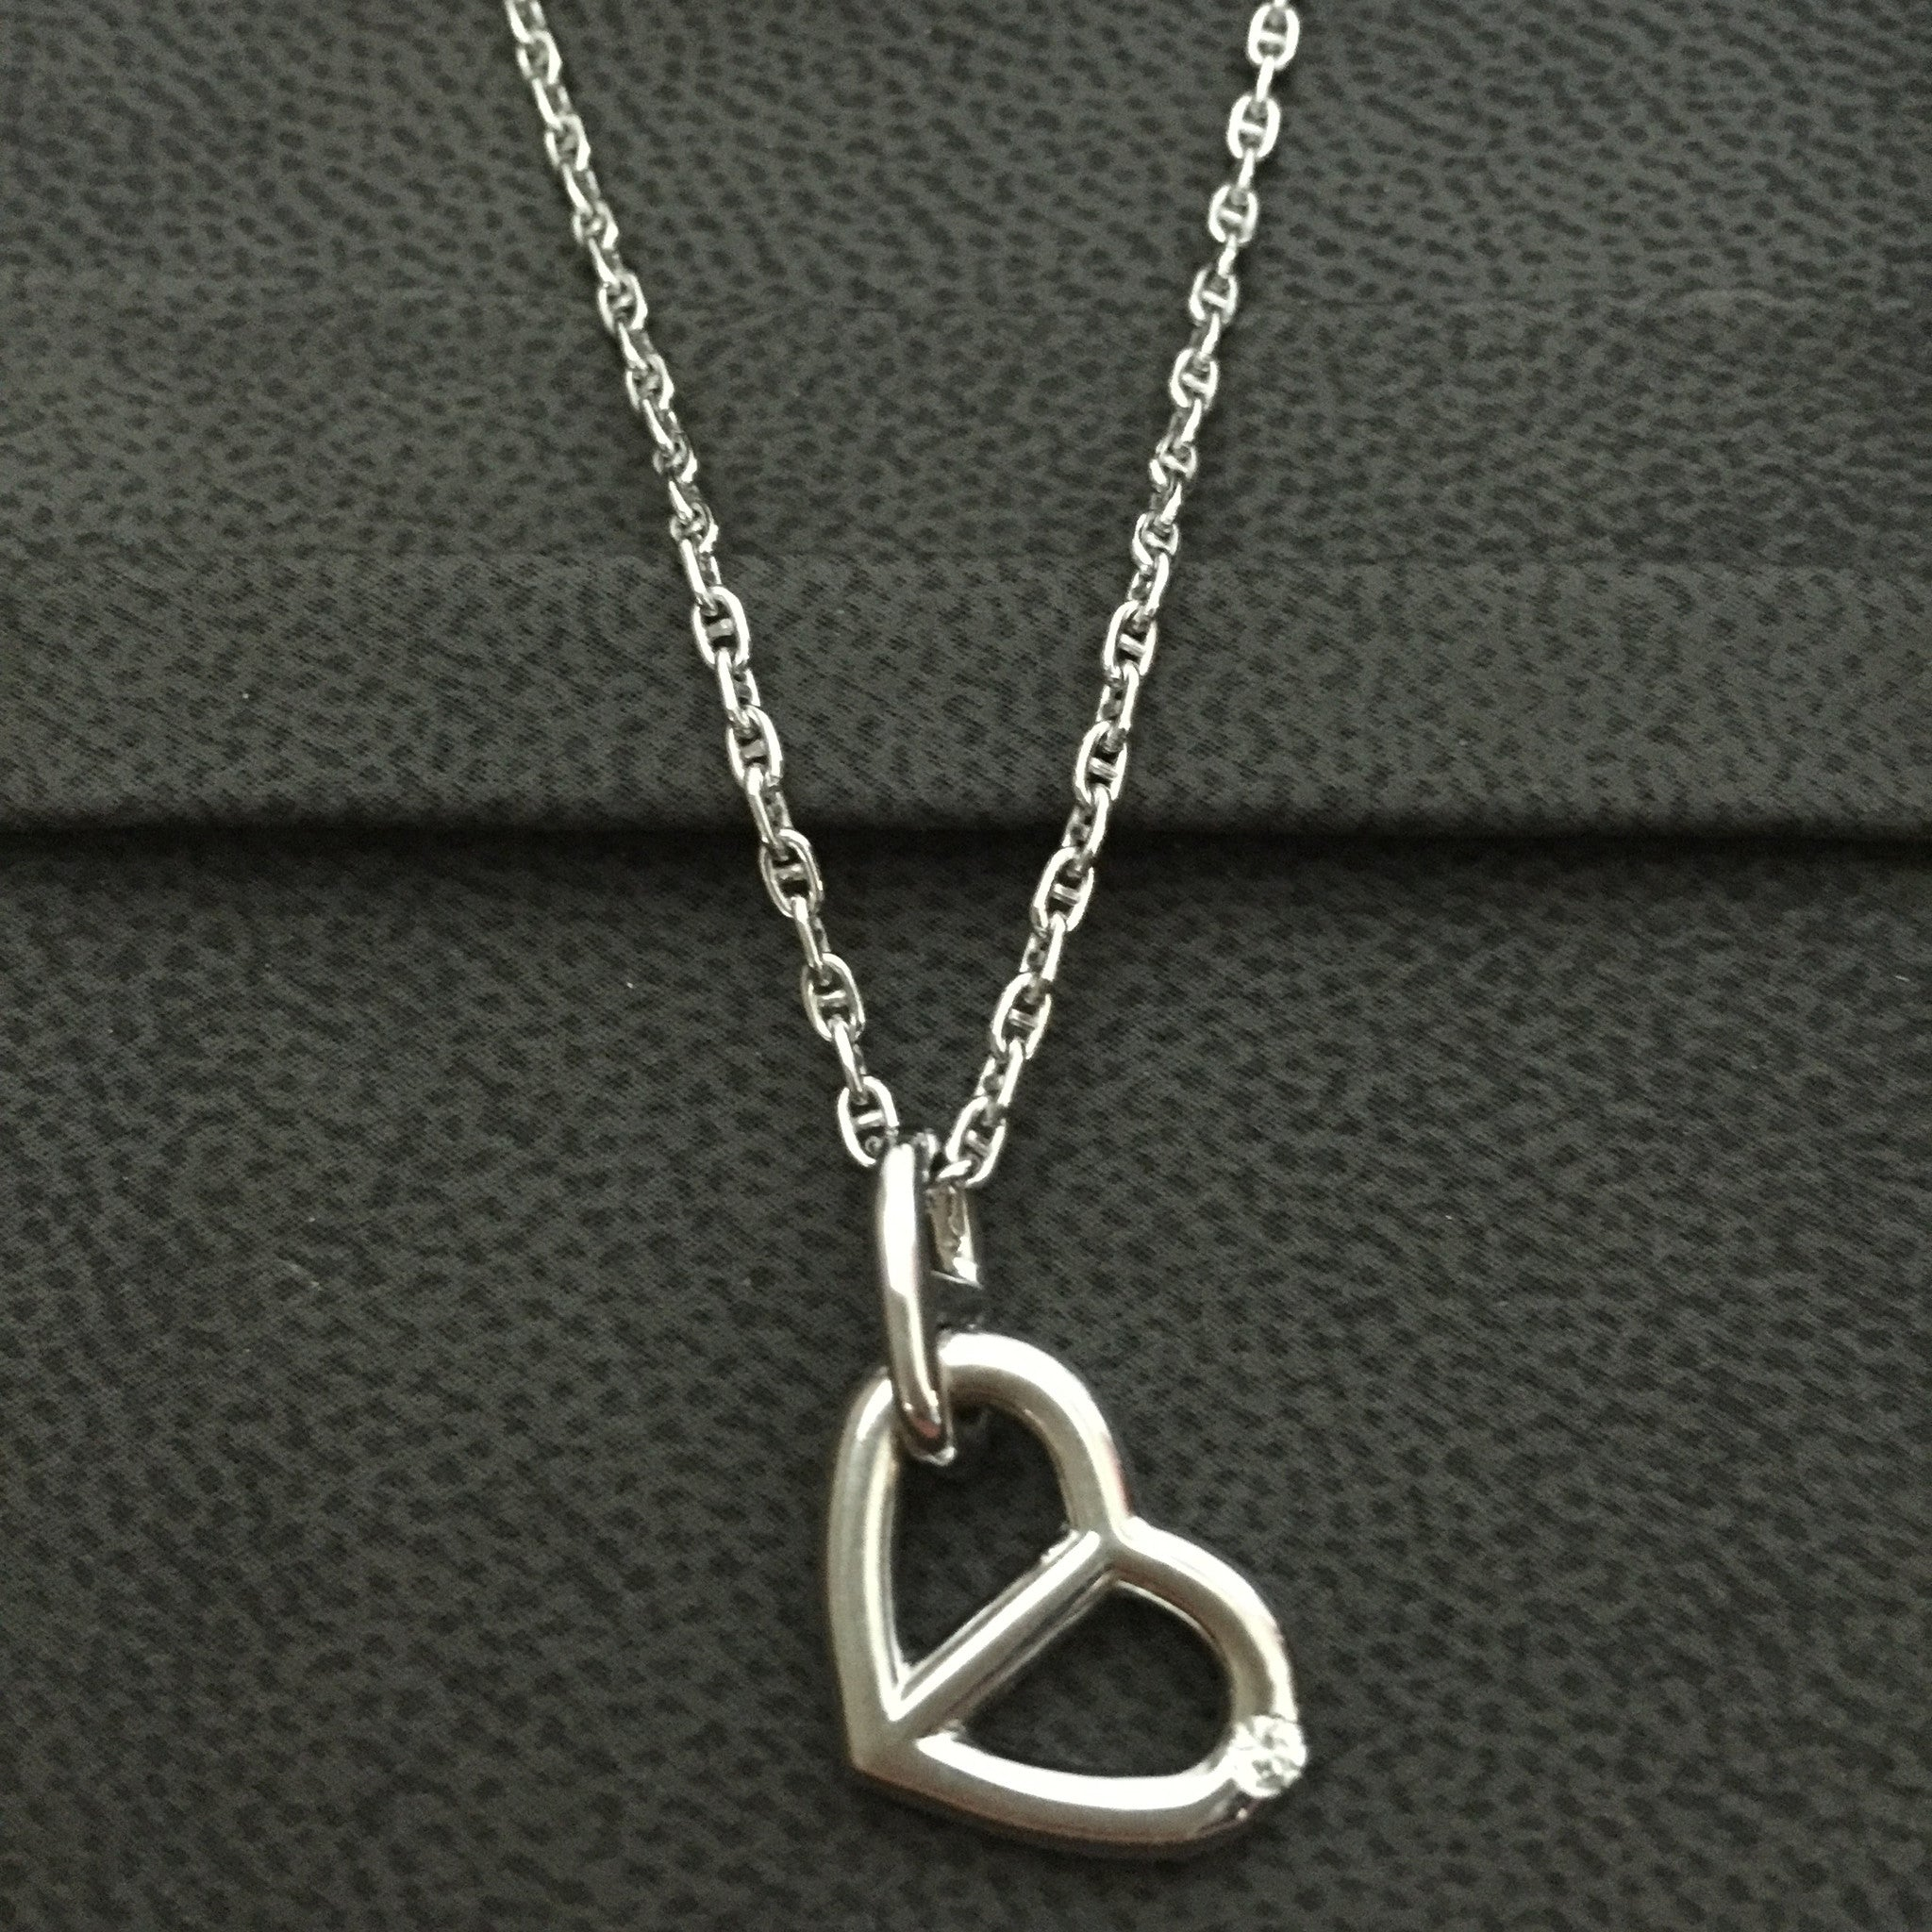 Authentic HERMES 18K Chain D'Ancre Diamond Heart Pendant Necklace